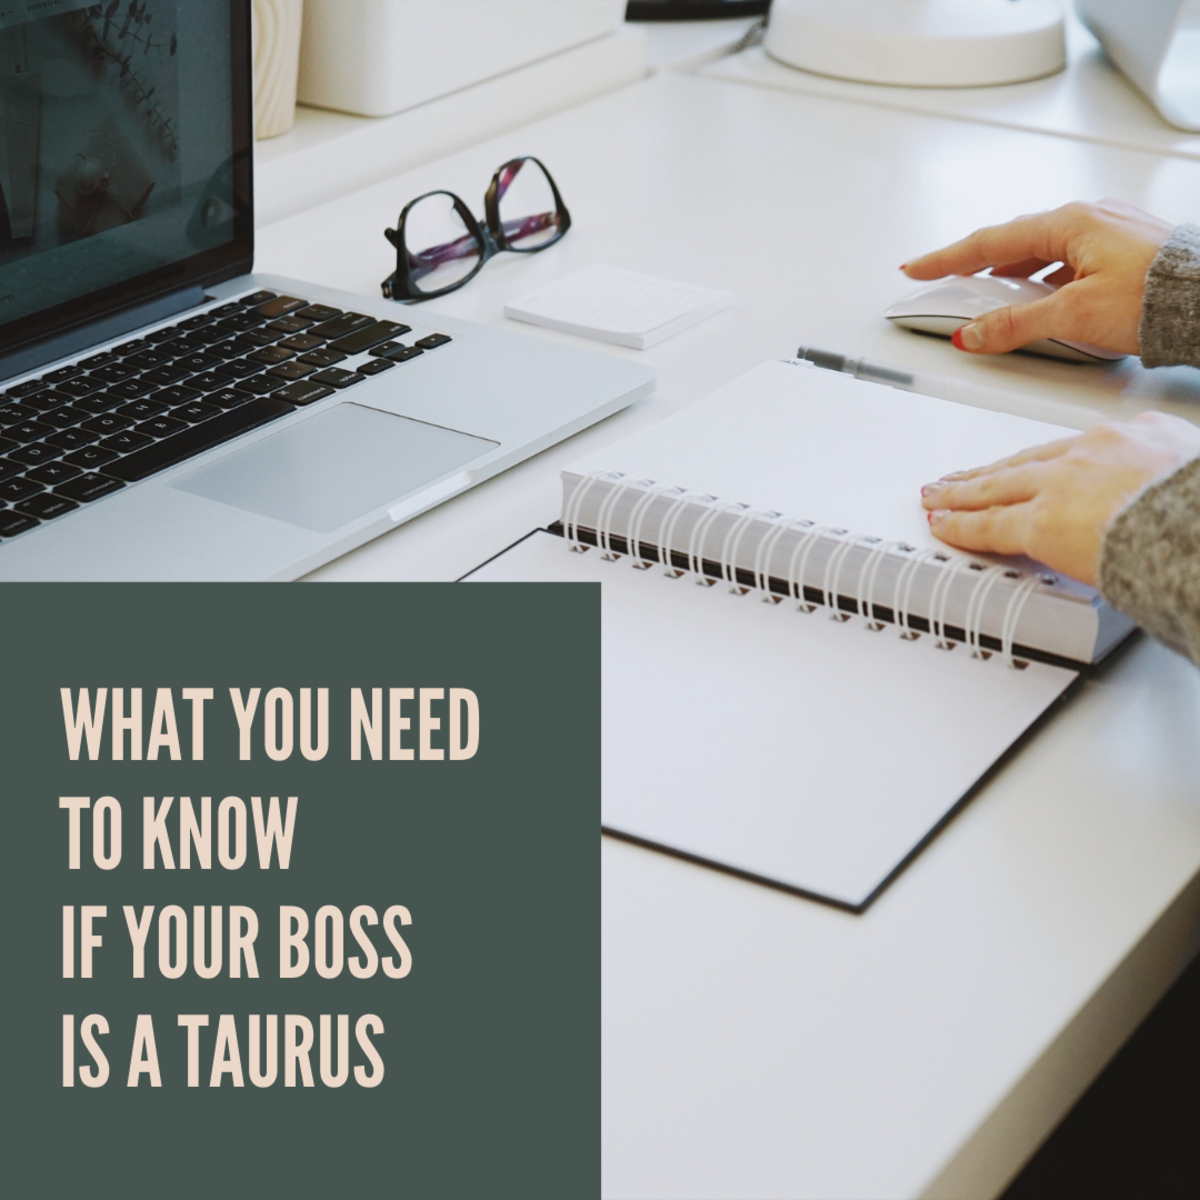 A Taurus boss likes organization and practicality in the workplace.